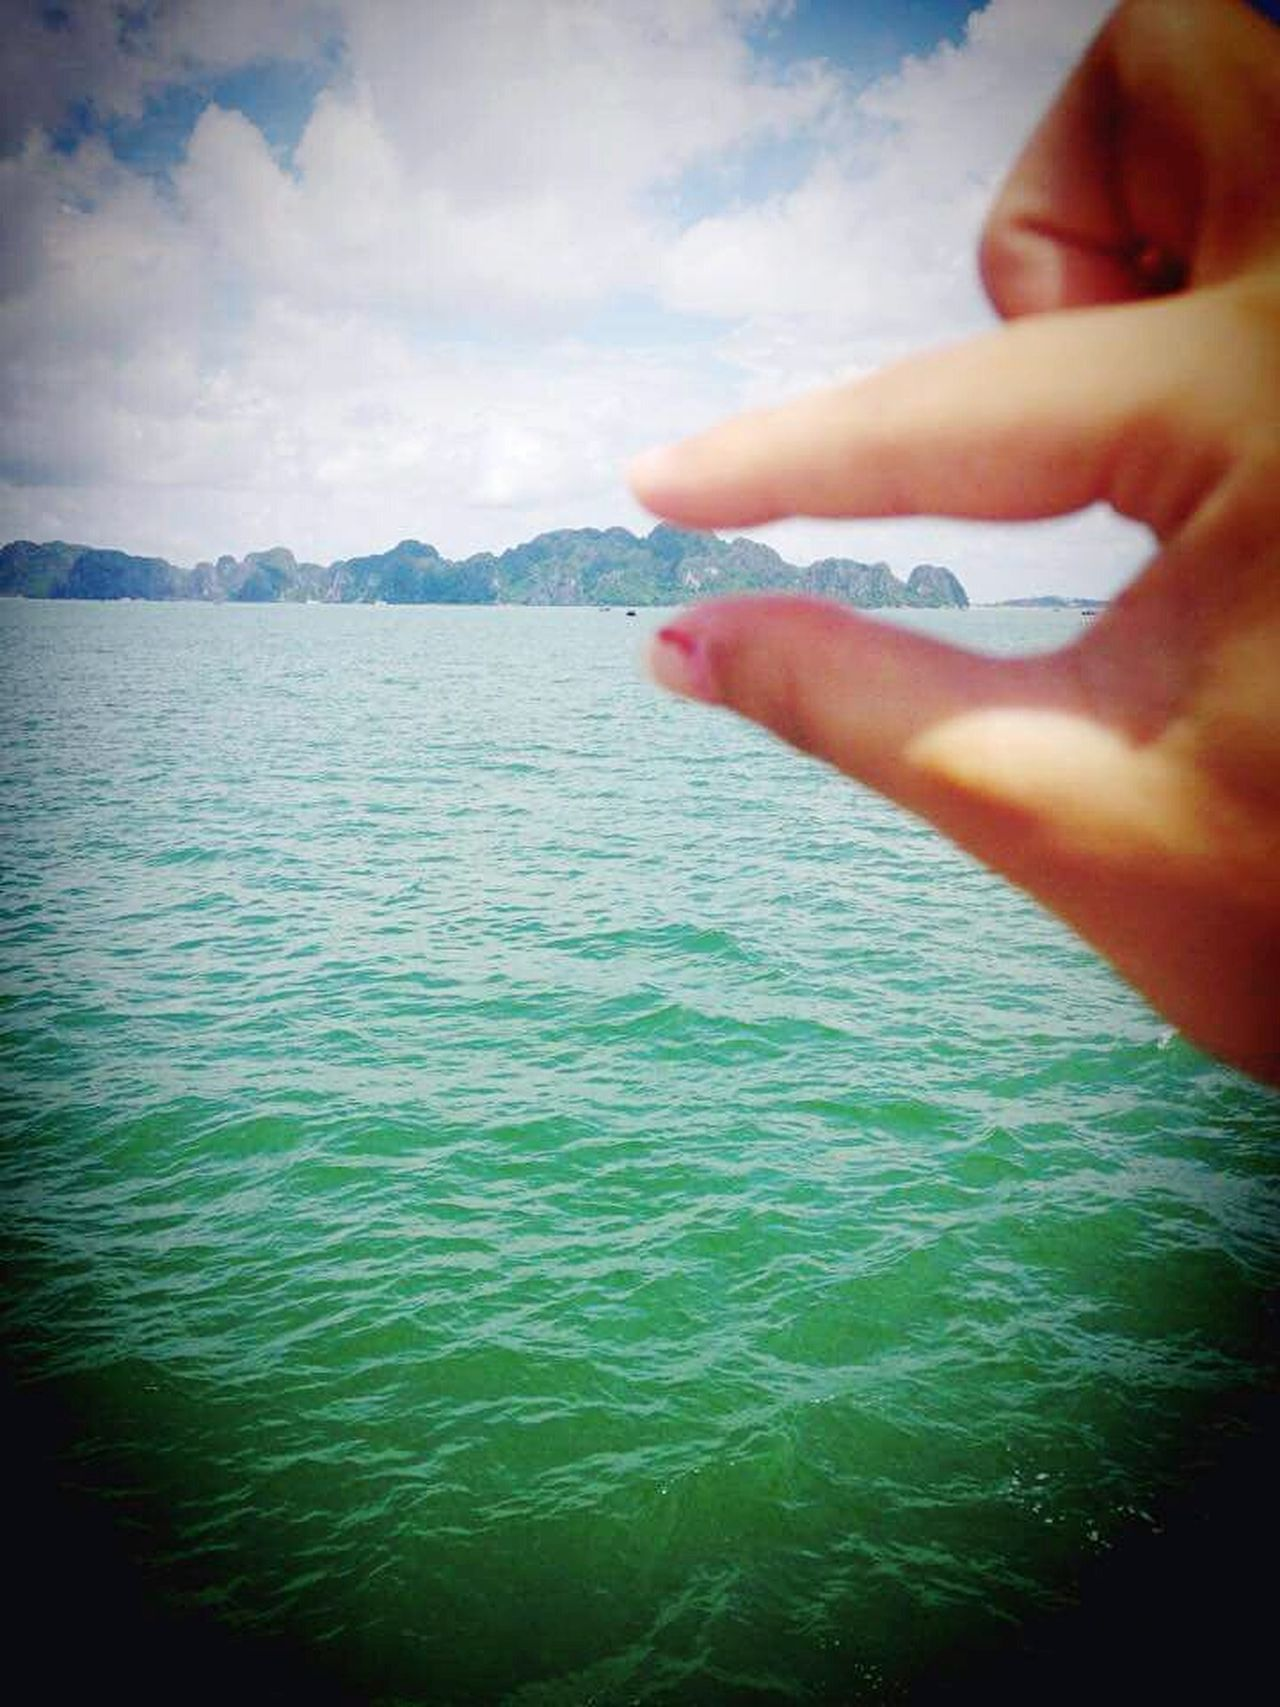 Showing Imperfection Summer Summer2015 Summertime On Board Boat Hand Take It Easy